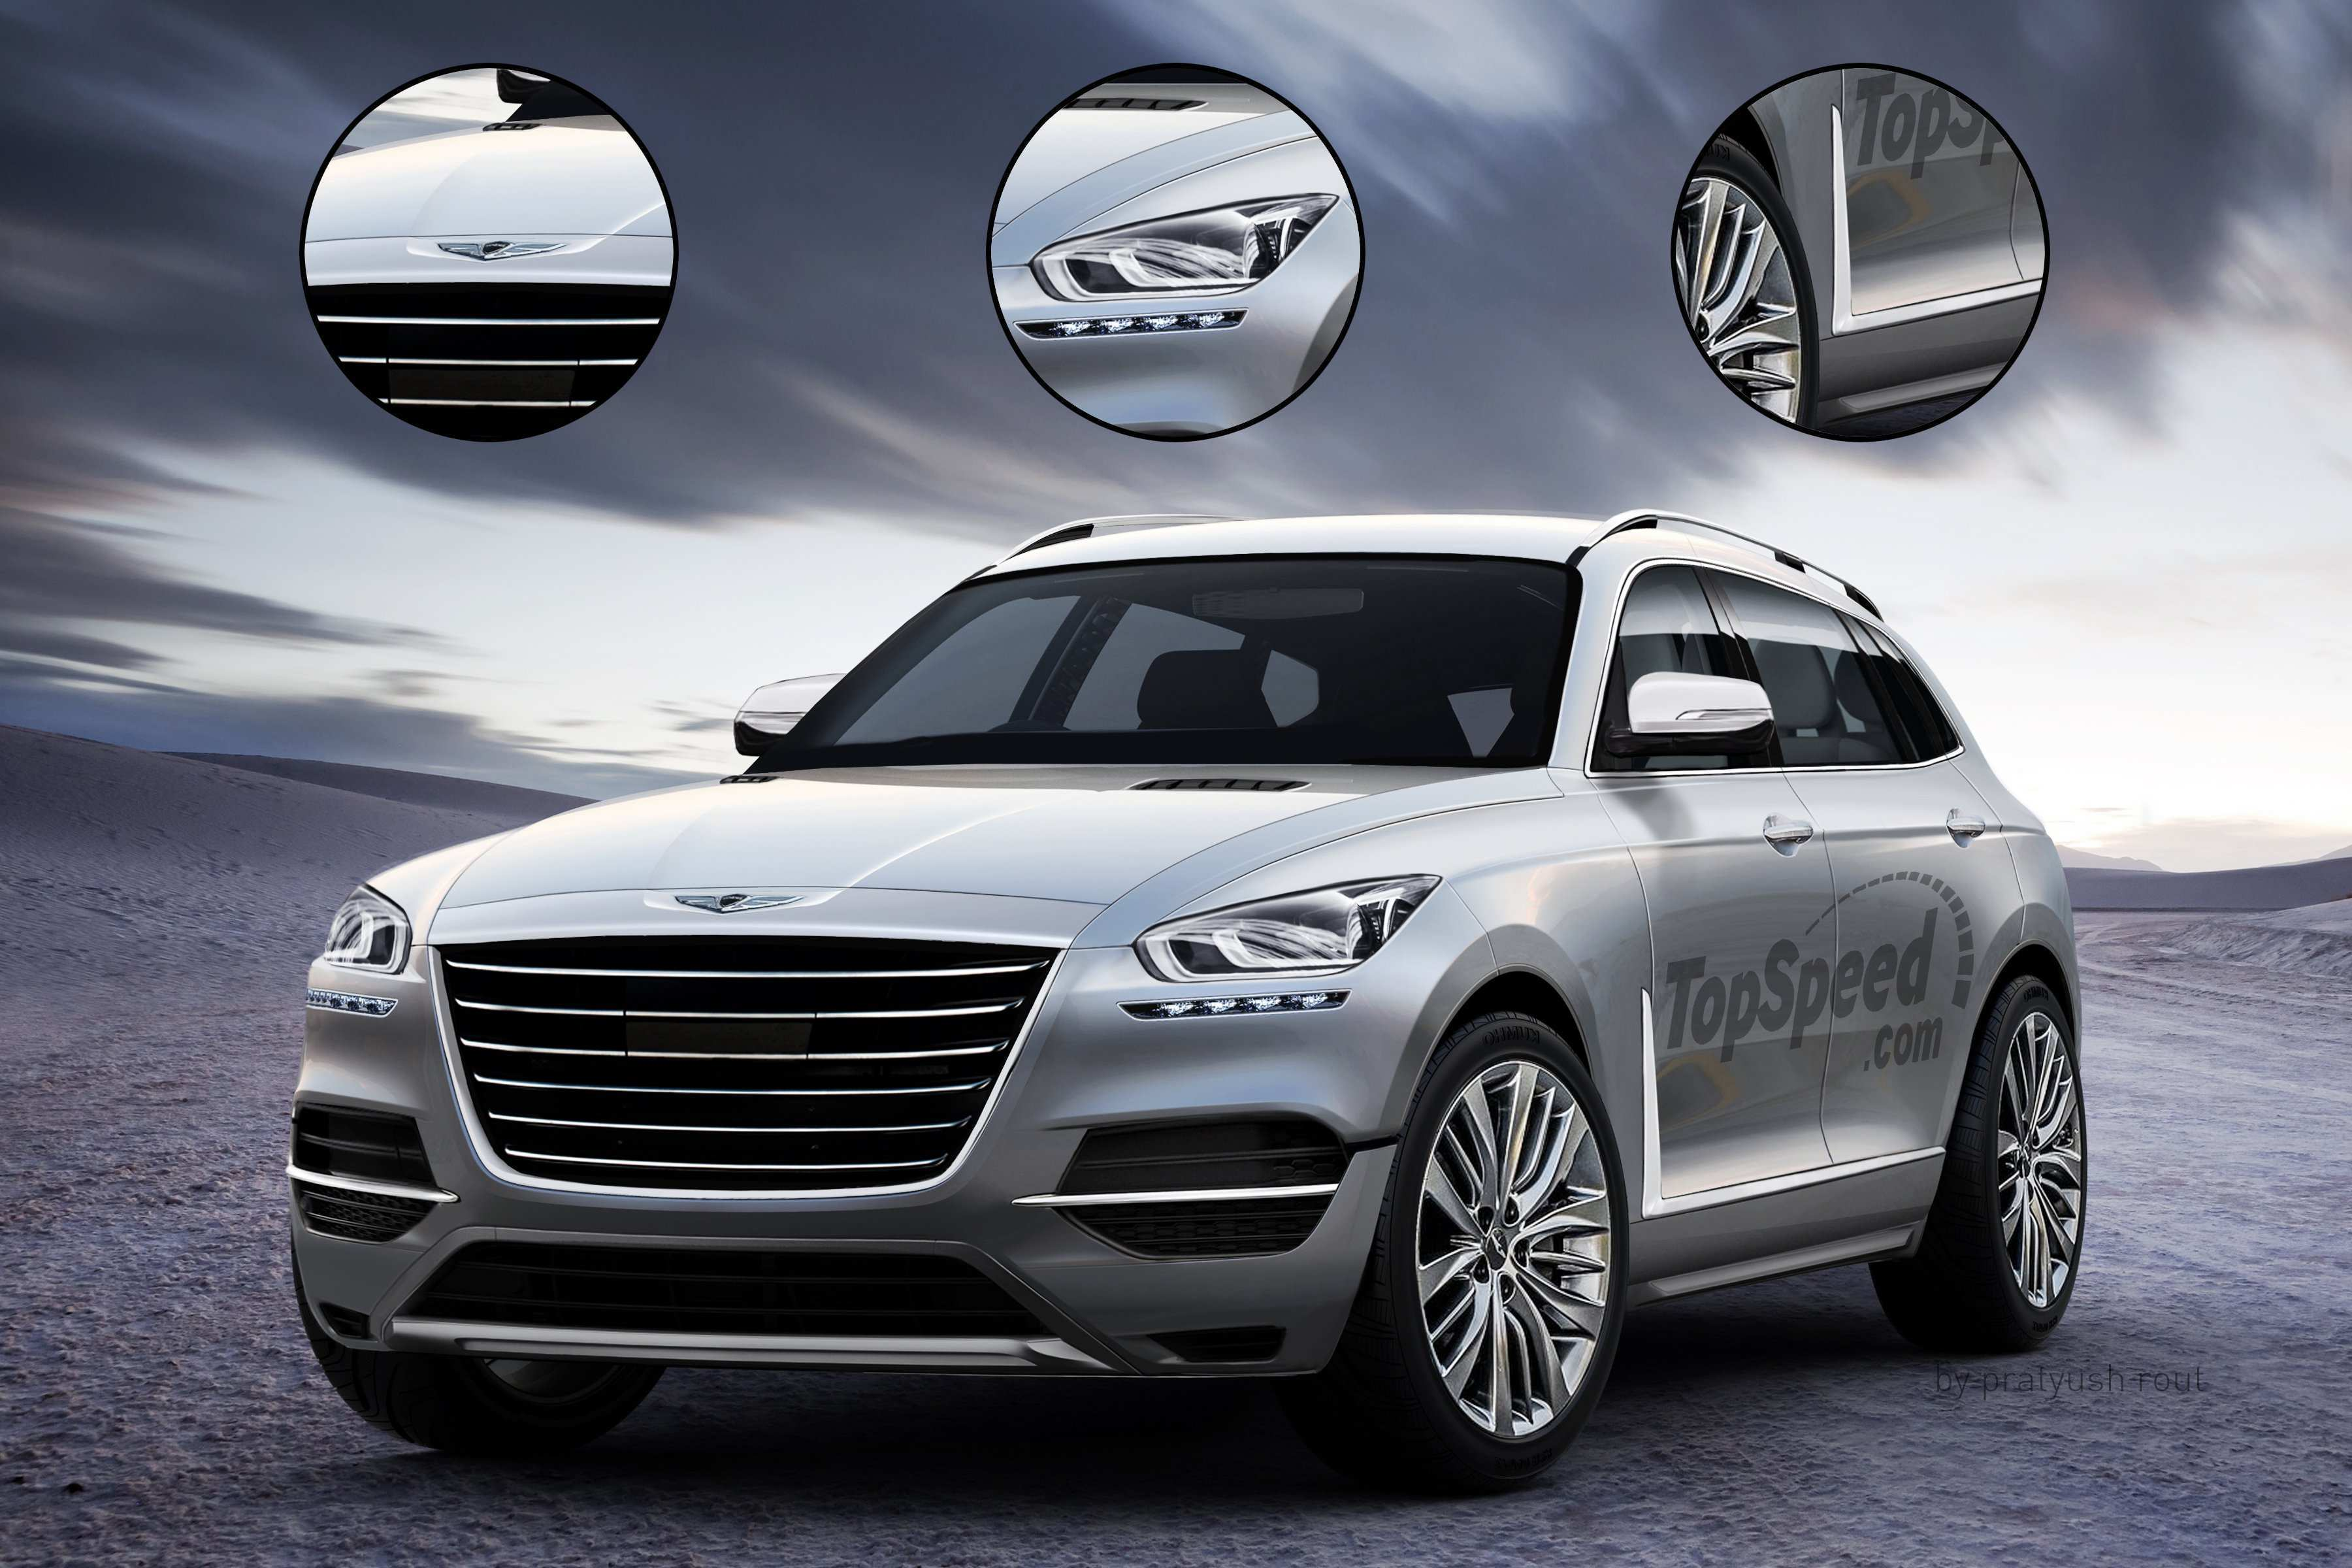 78 Gallery of 2019 Genesis Suv Picture with 2019 Genesis Suv